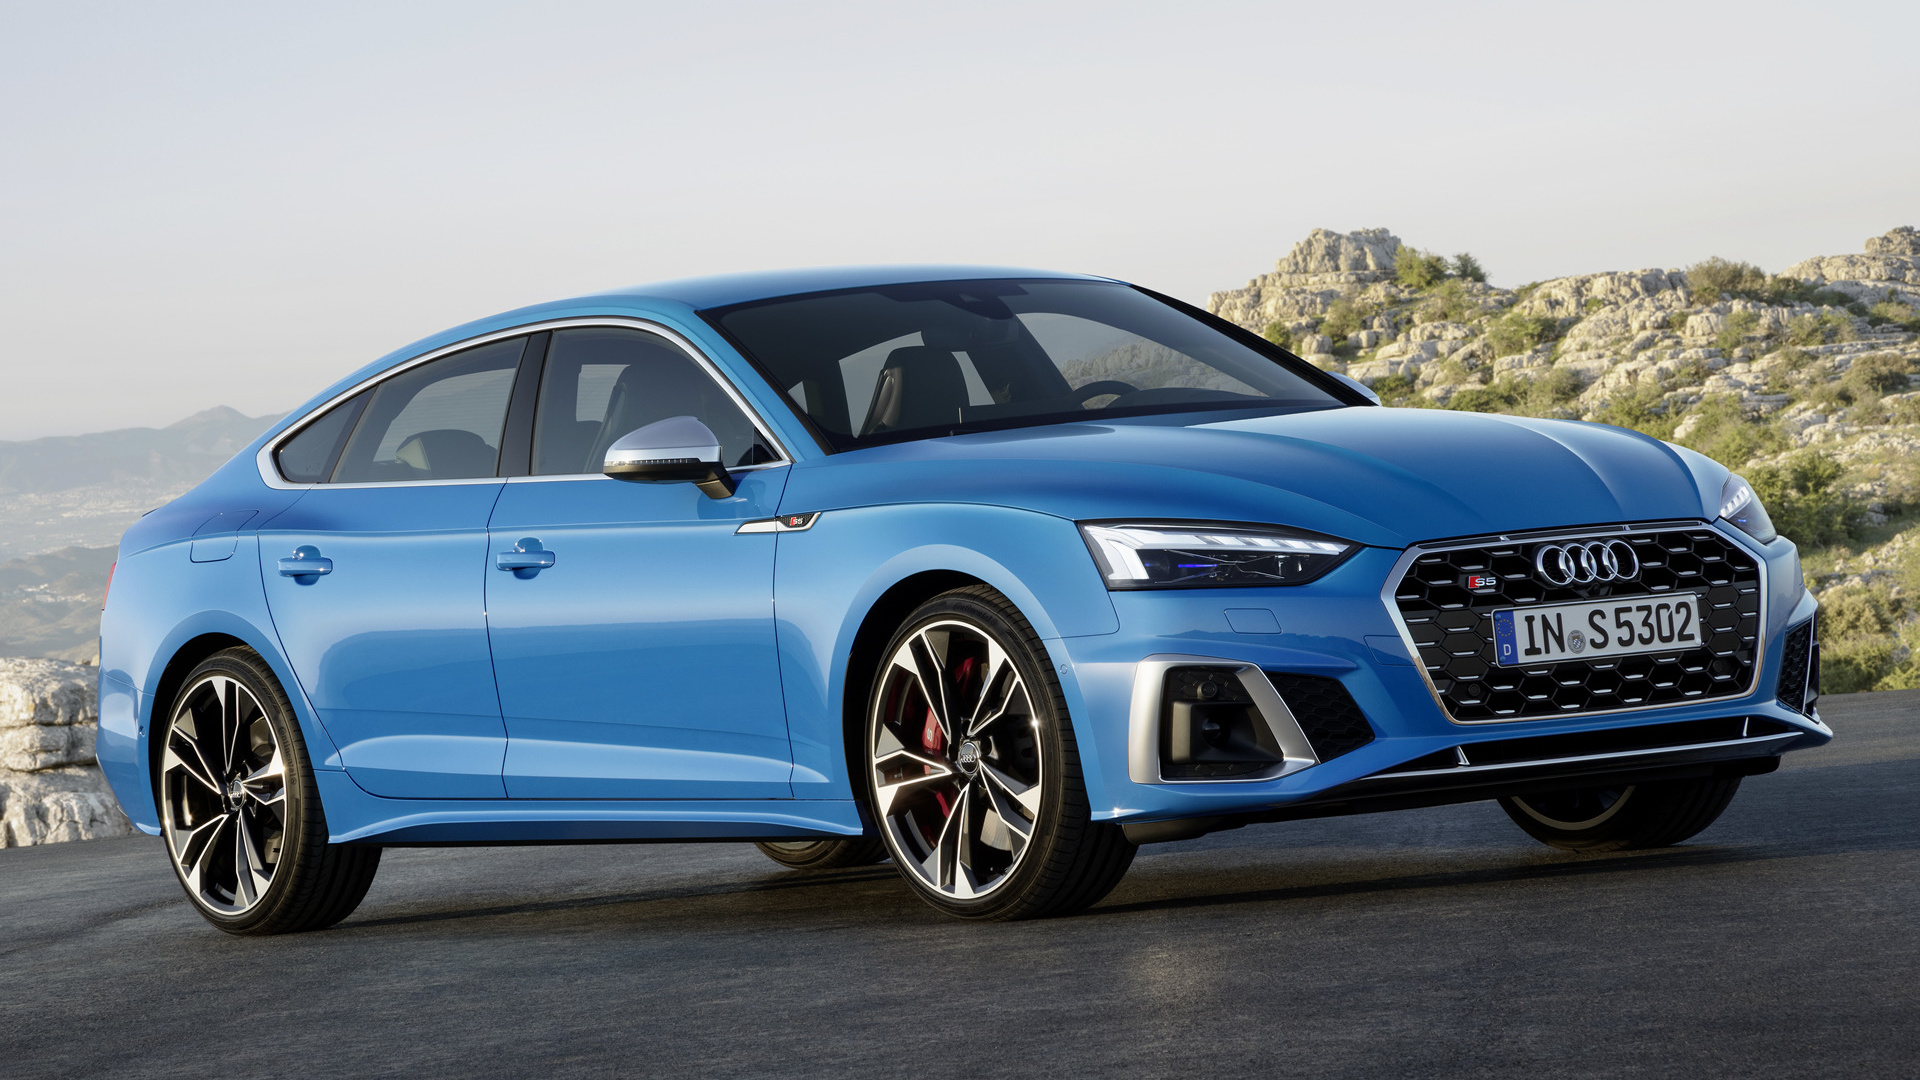 2020 Audi S5 Sportback Hd Wallpaper Background Image 1920x1080 Id 1040808 Wallpaper Abyss